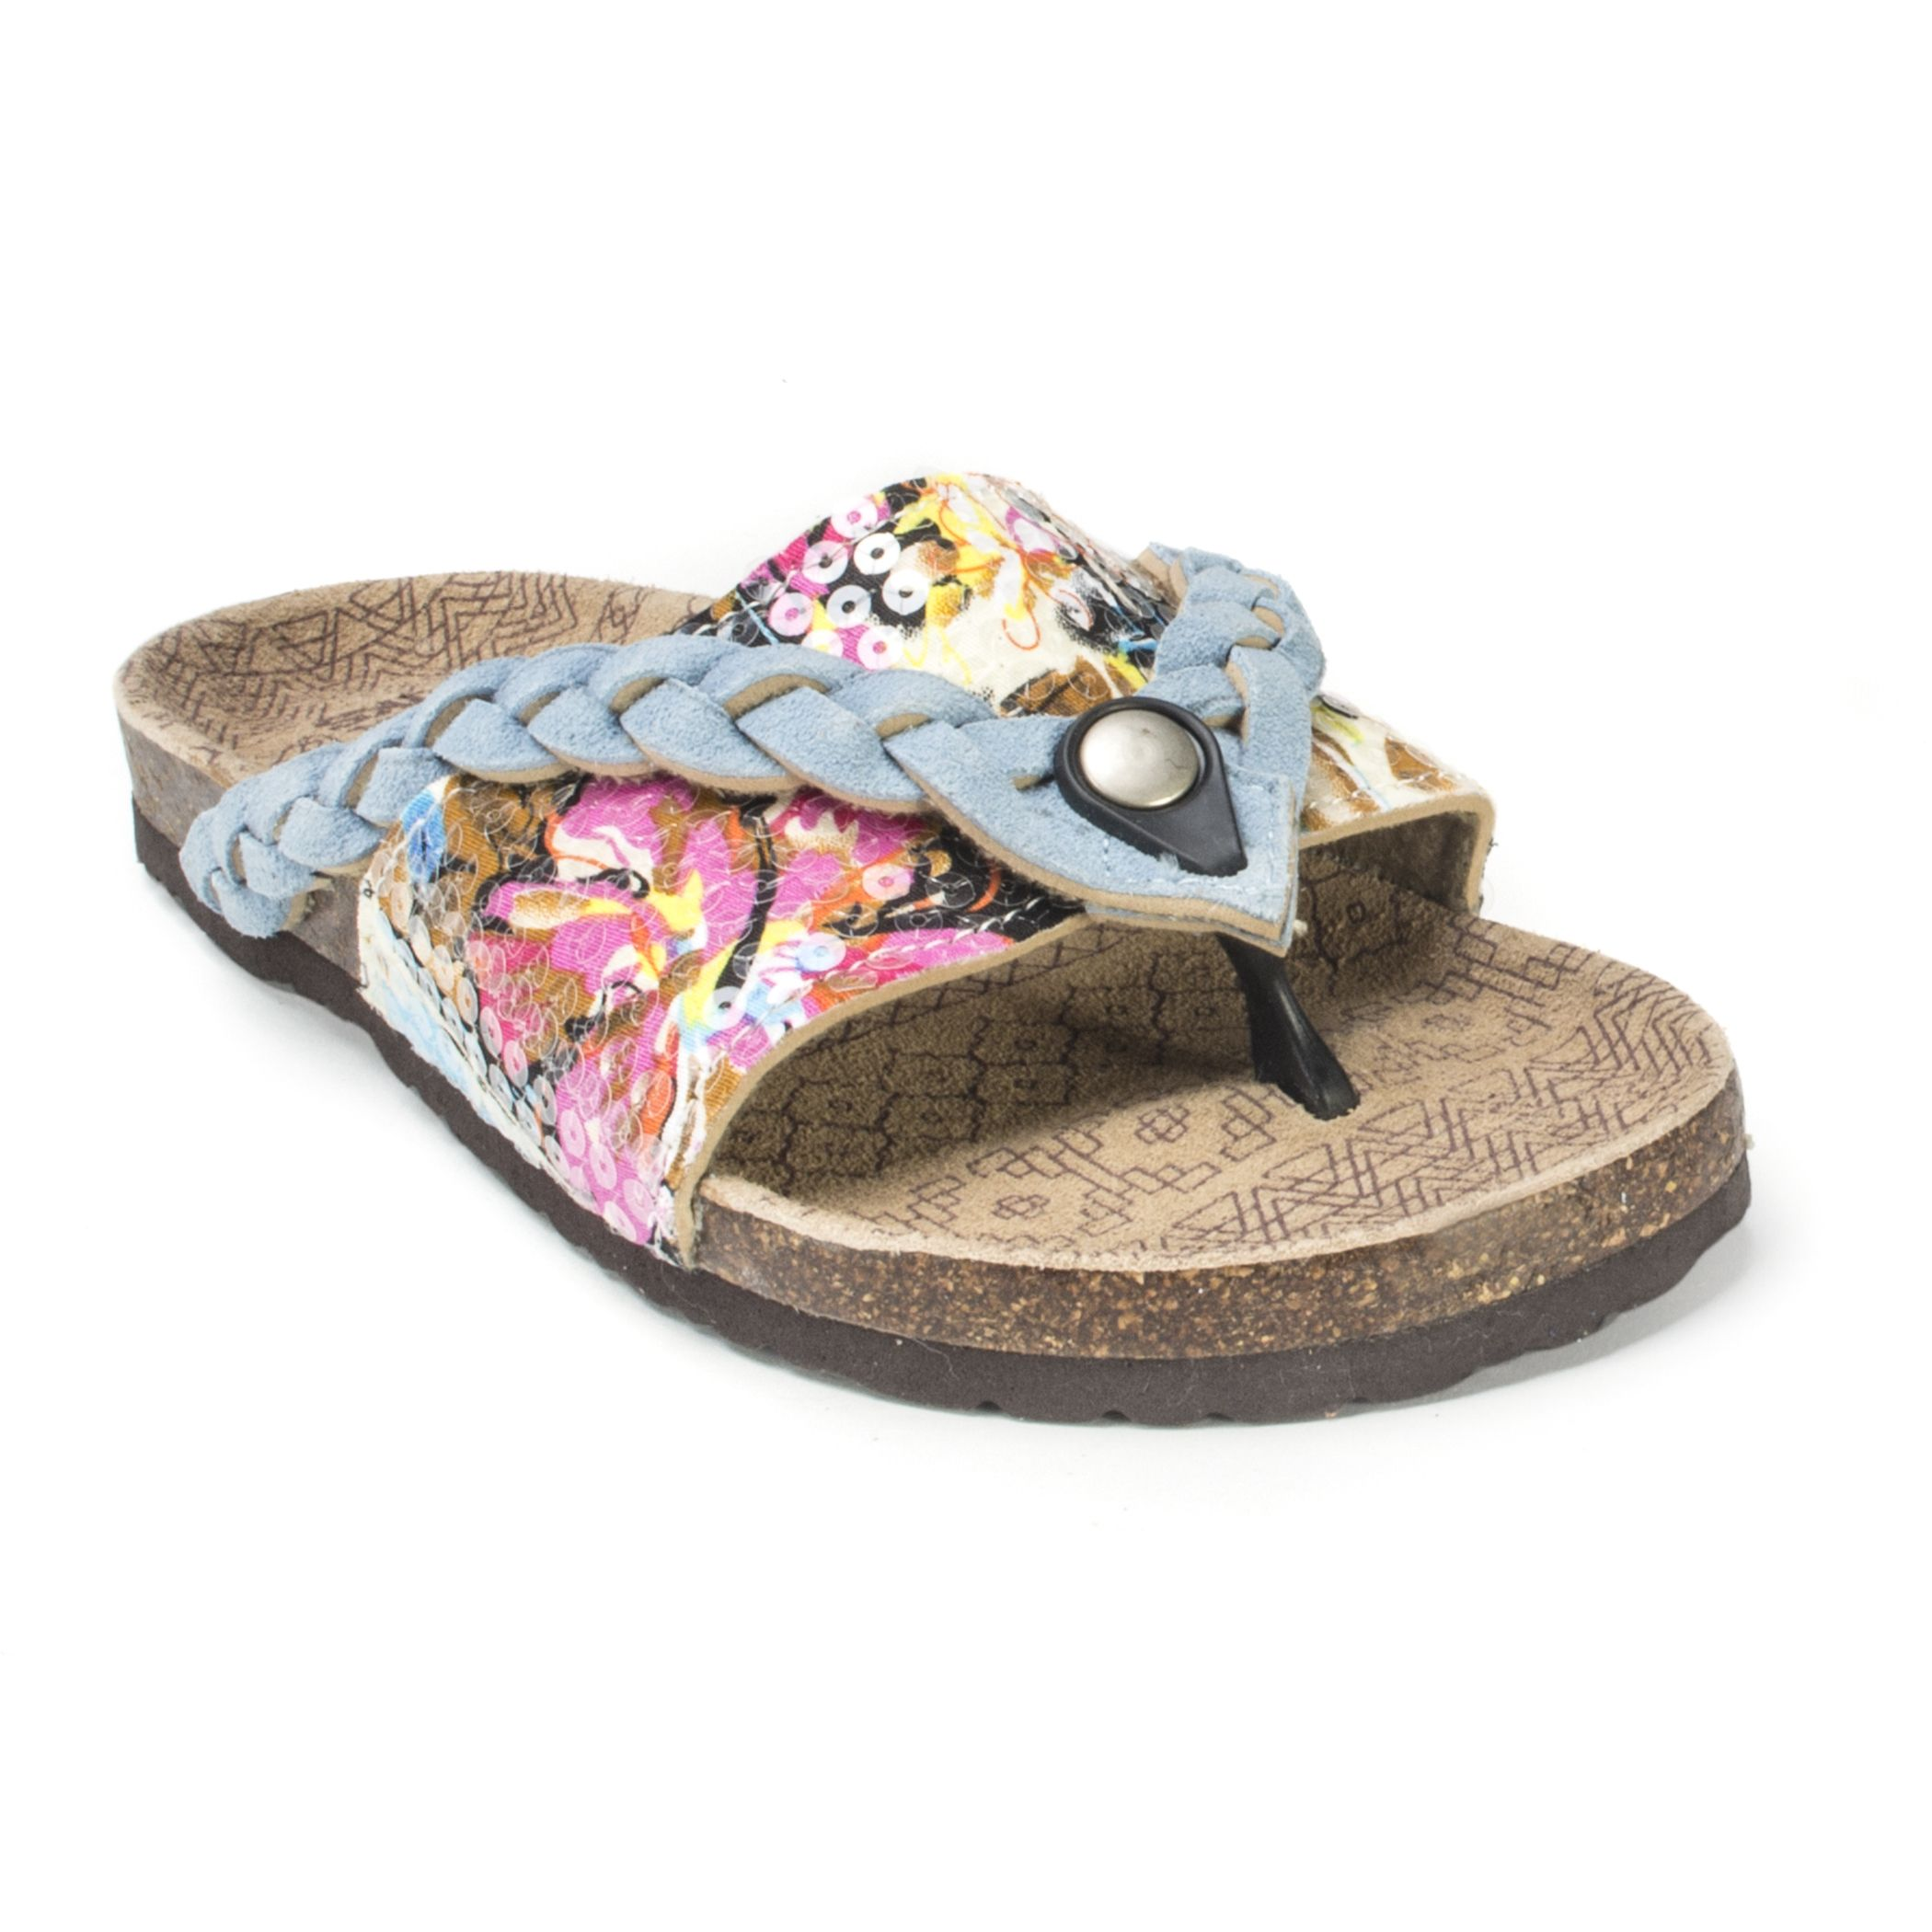 The Ann sandals by Muk Luks are not your average comfort shoes. These sweet kicks will cradle your foot in comfort while the sequined and braided upper will add a flash of glam to your warm-weather wardrobe.